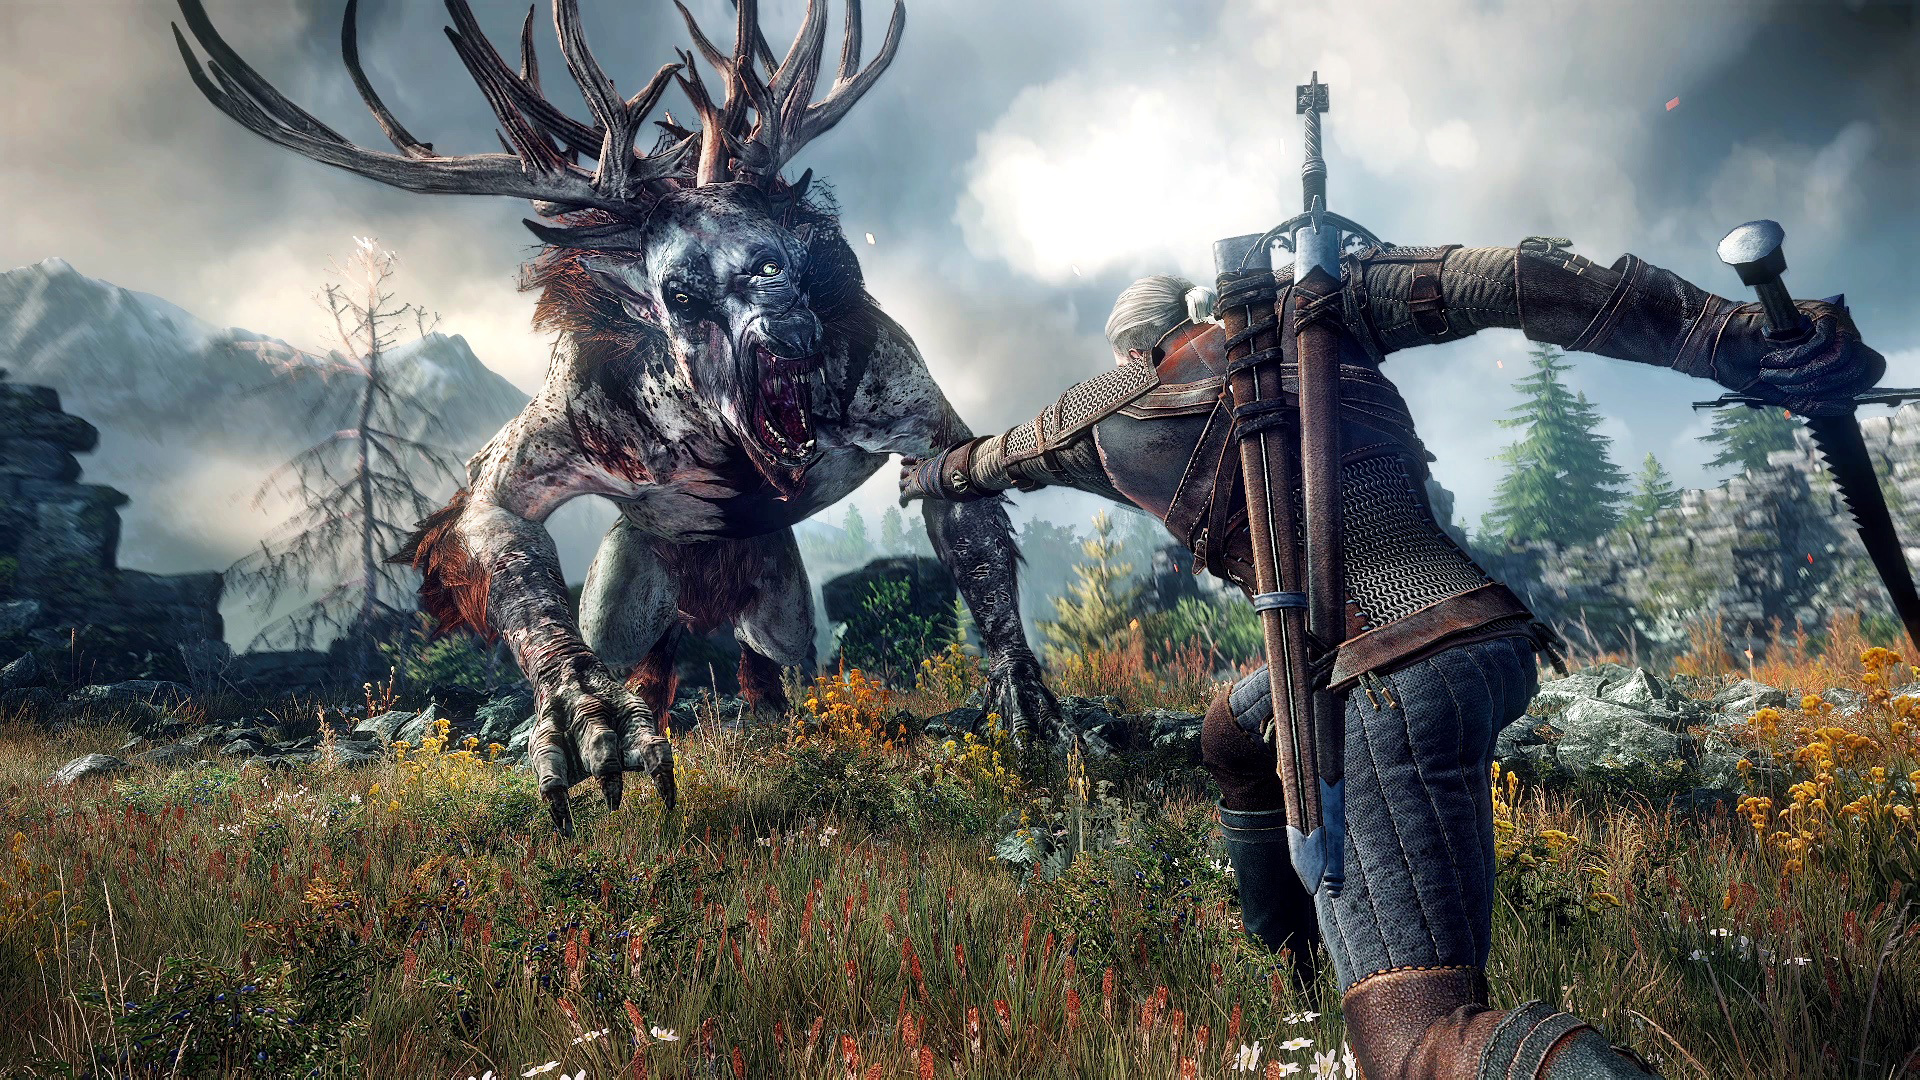 The Witcher 3: PS4 Pro 4K Patch Complete Analysis + Frame-Rate Tests!